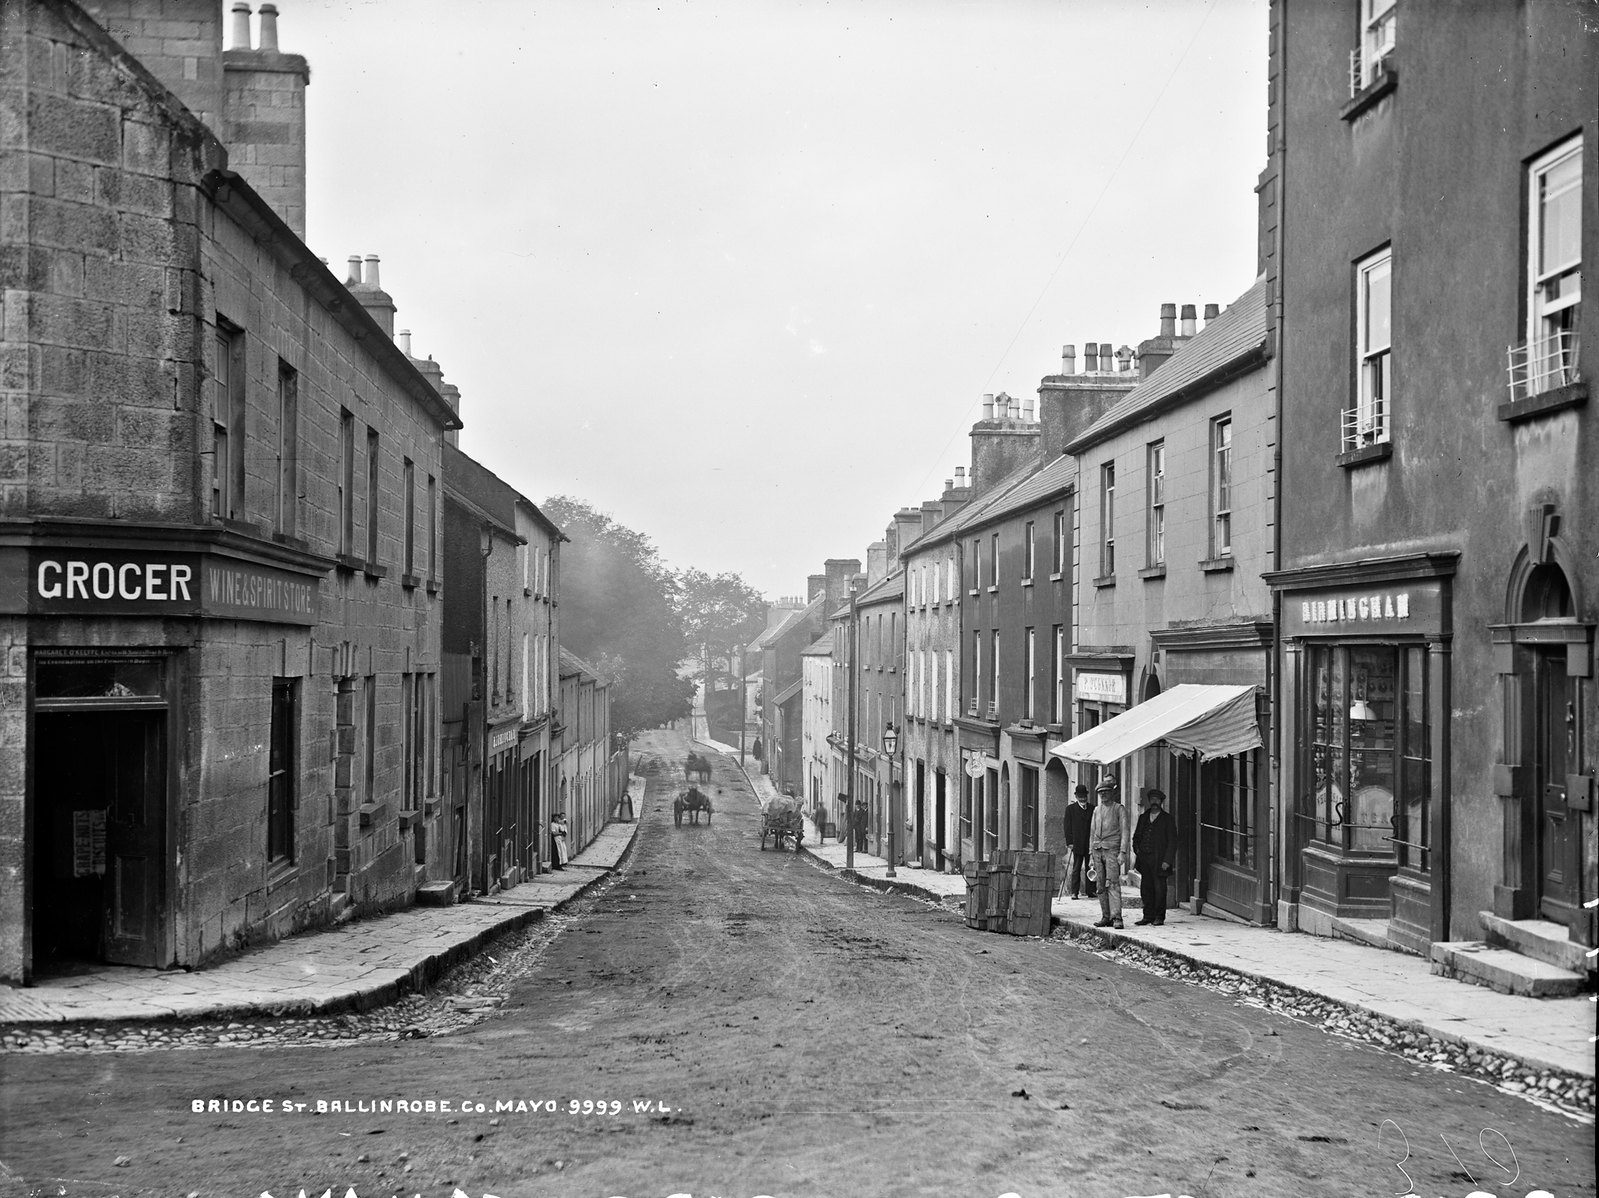 Bridge St. Ballinrobe, Co. Mayo | by National Library of Ireland on The Commons